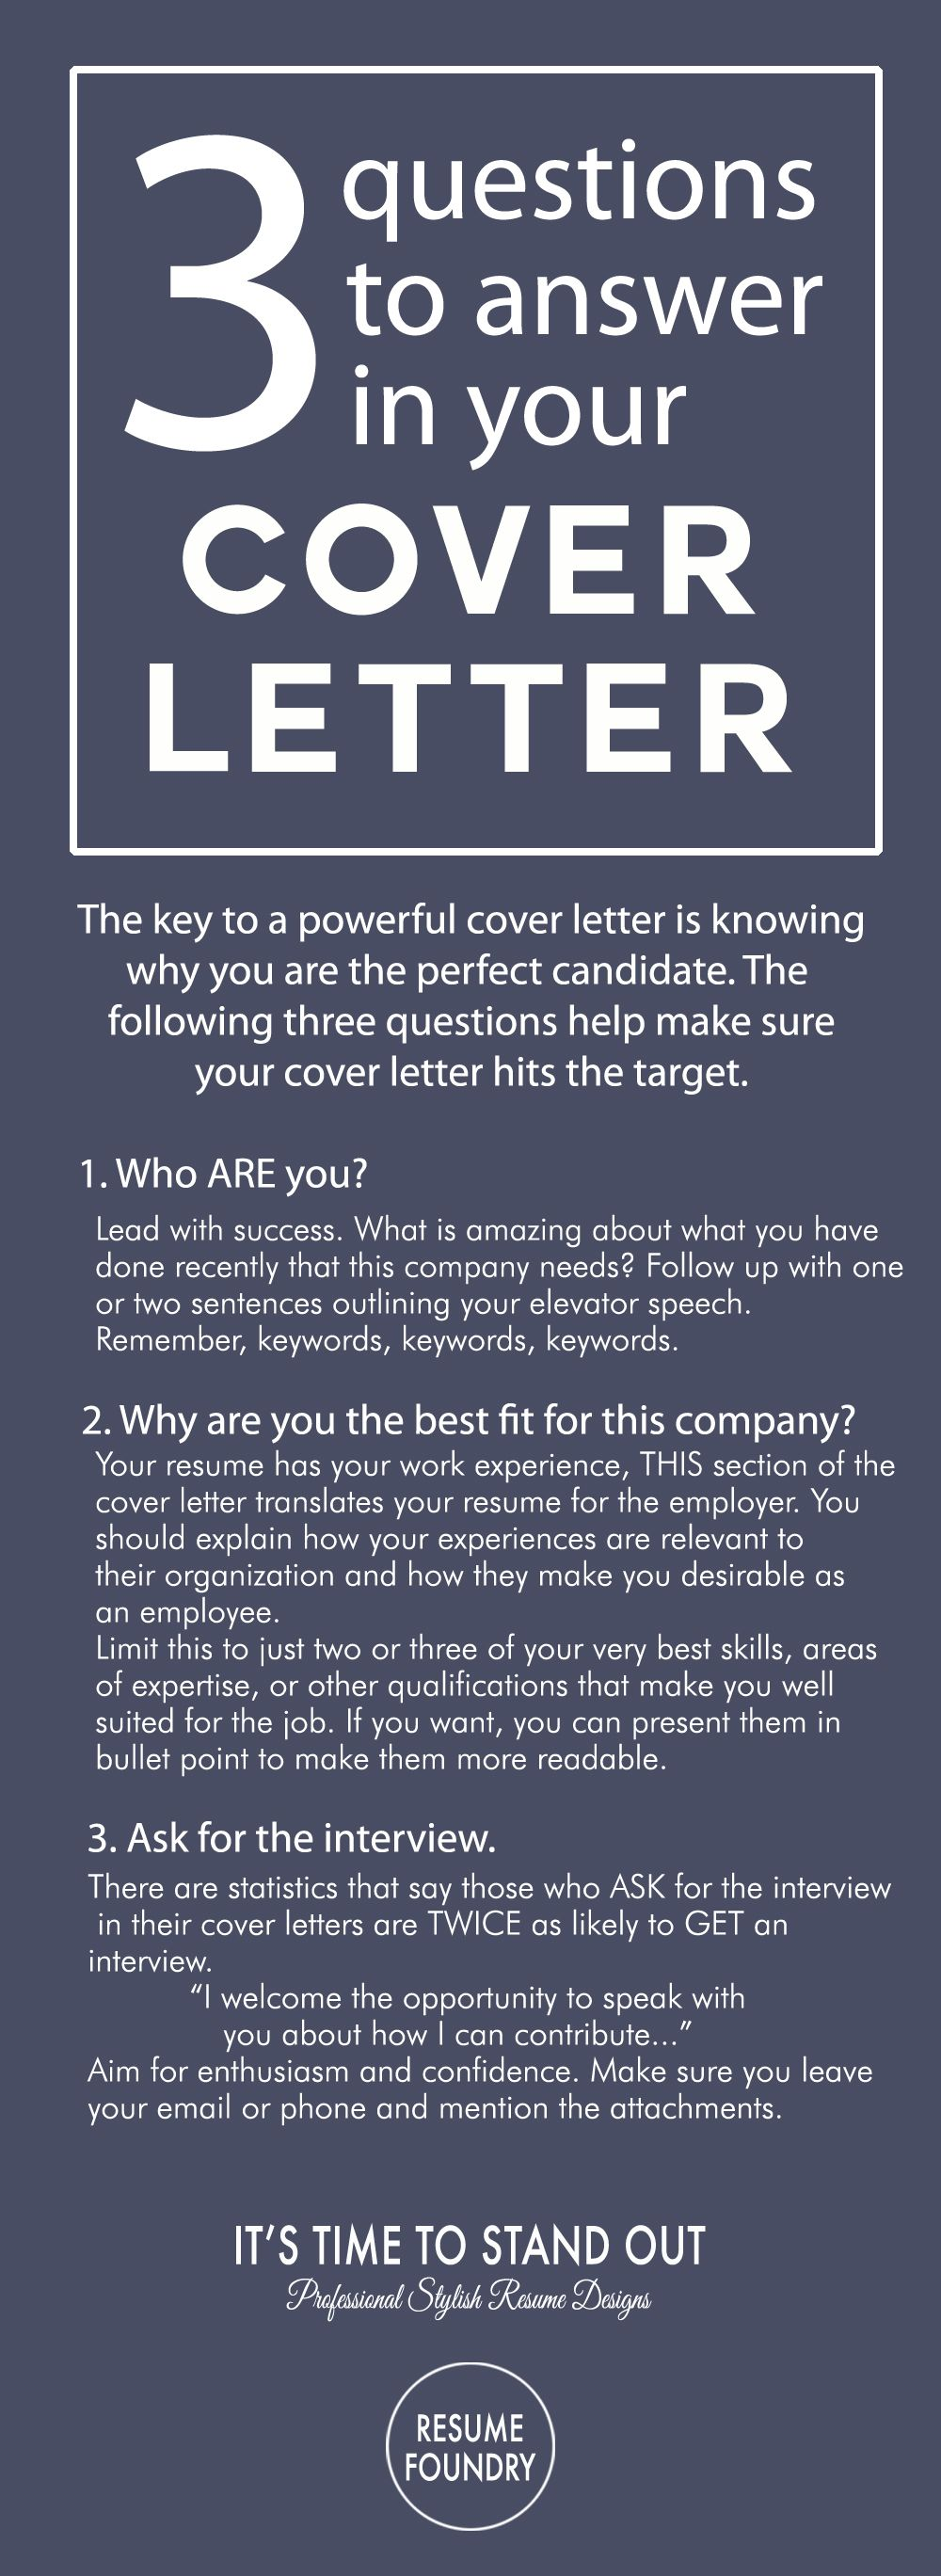 Cover Letter Work Outfits Interview Tips Pinterest Business